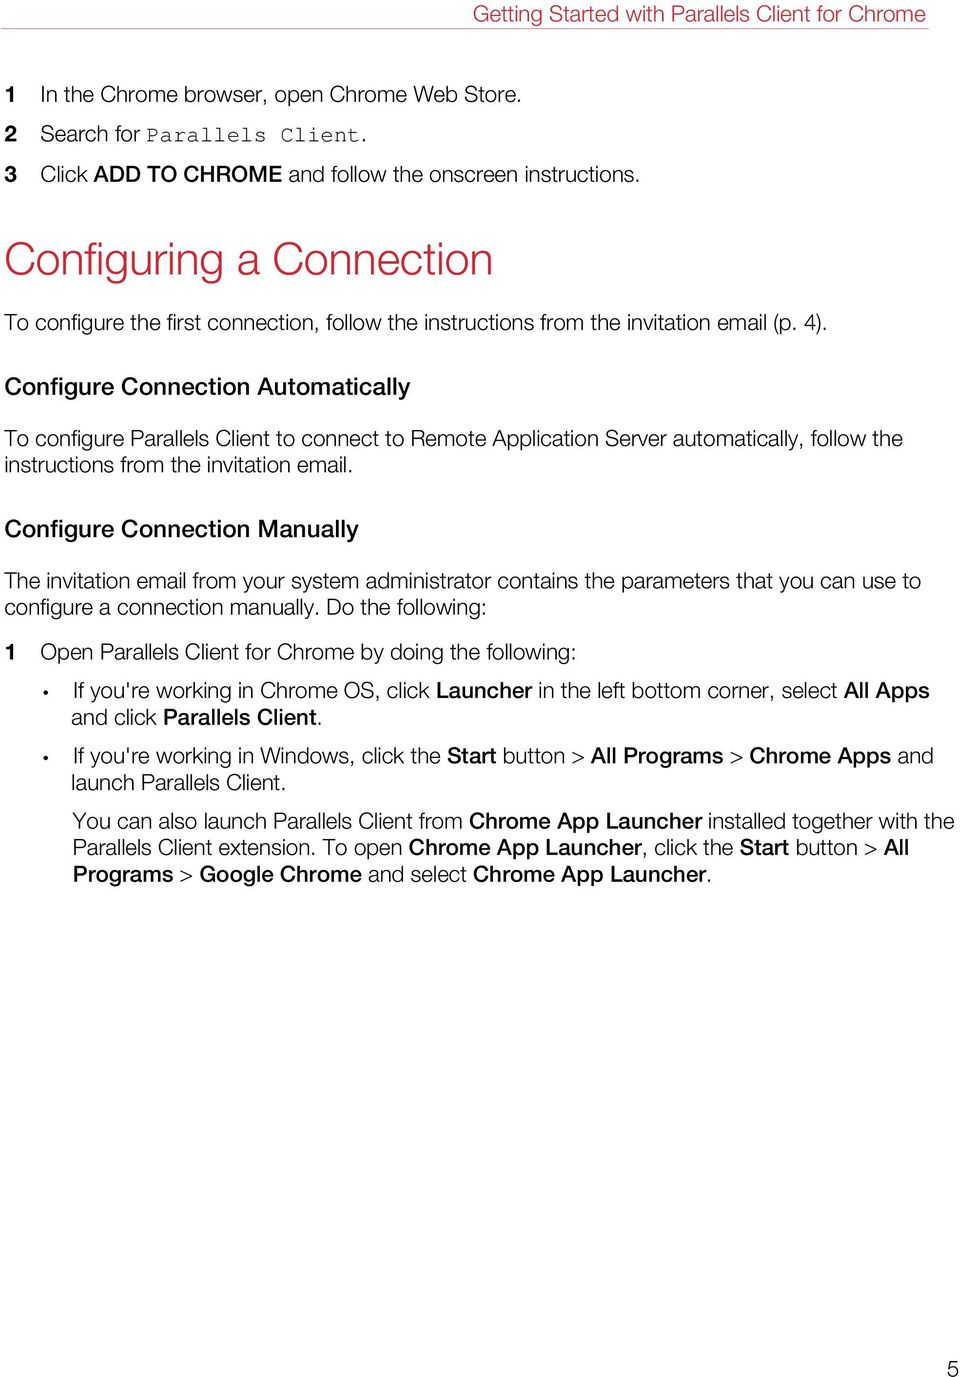 Configure Connection Automatically To configure Parallels Client to connect to Remote Application Server automatically, follow the instructions from the invitation email.